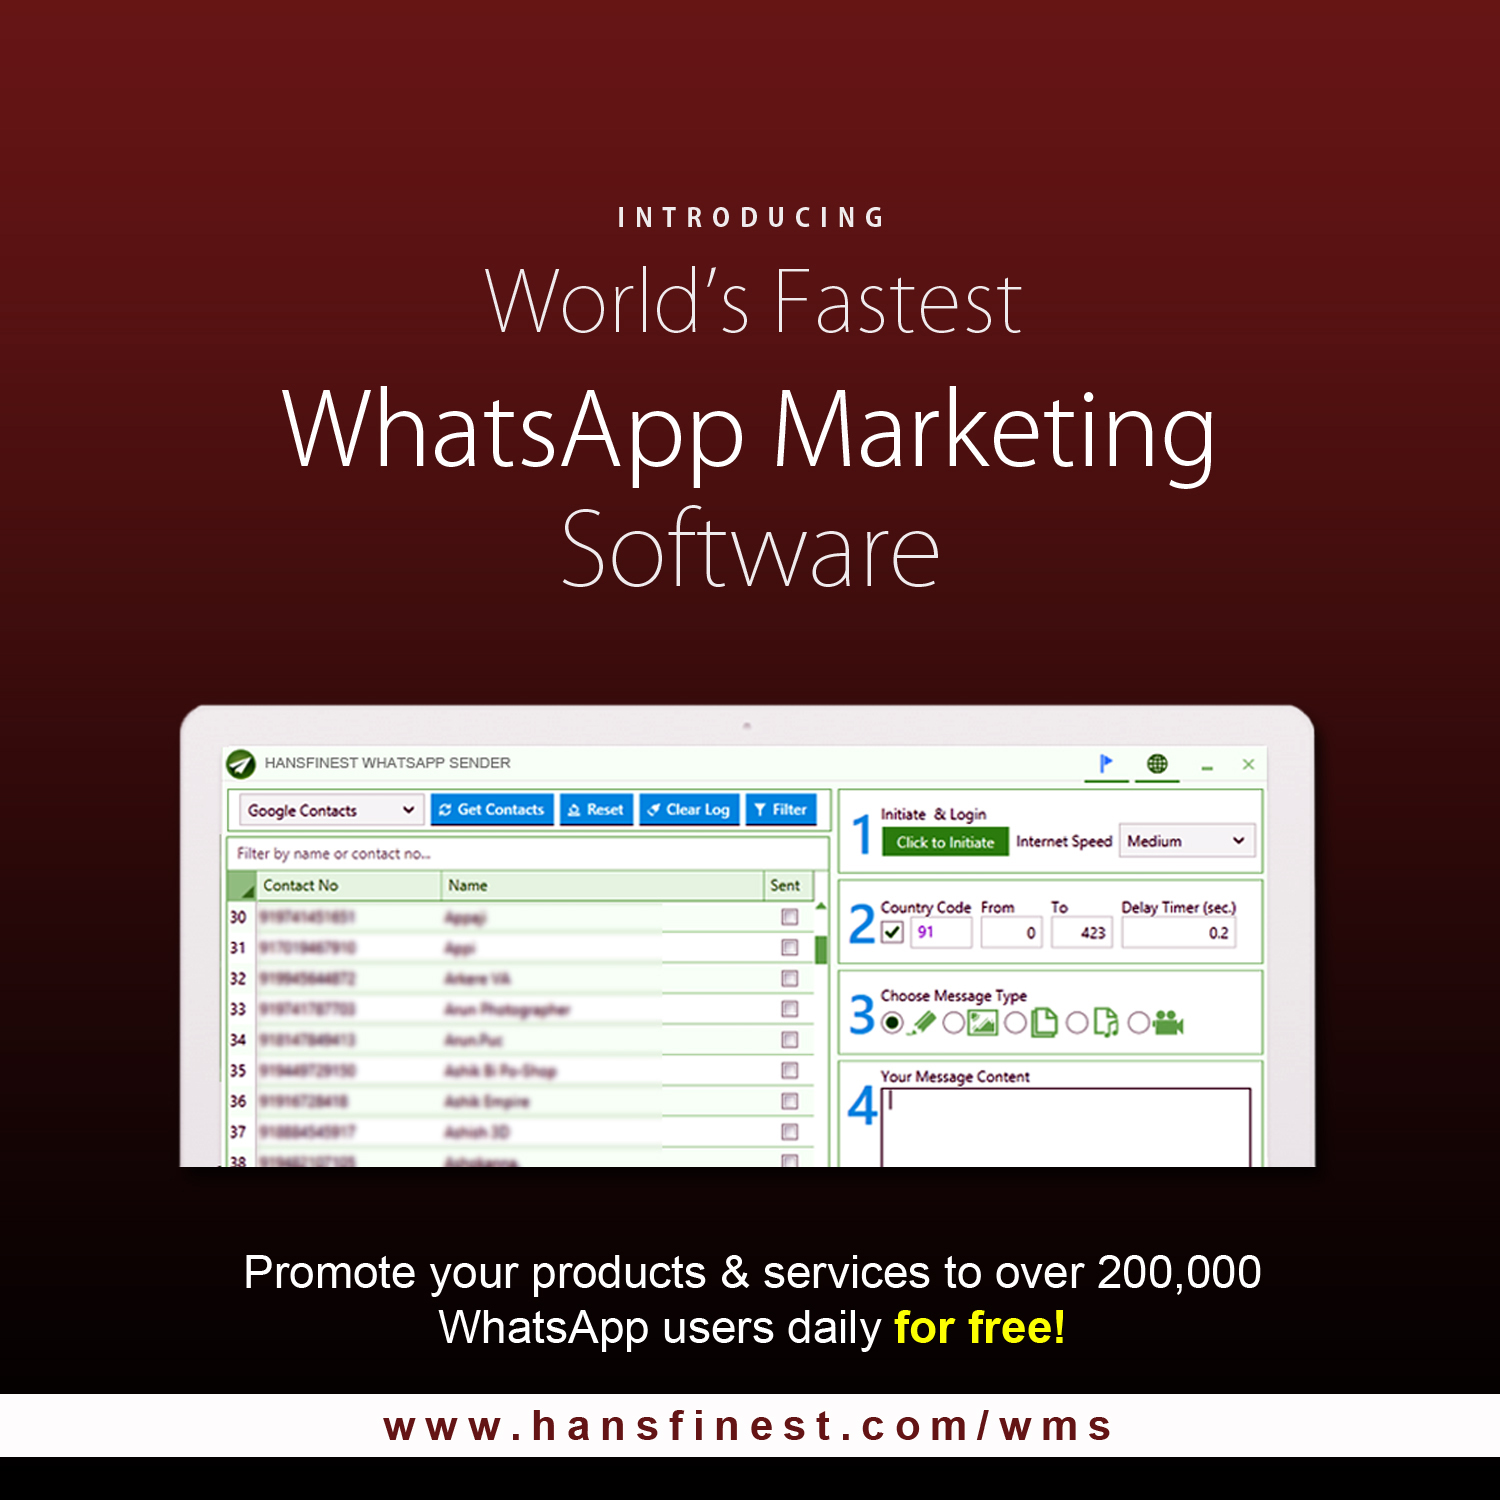 WhatsApp Marketing tool for WhatsApp Mass Sender Software